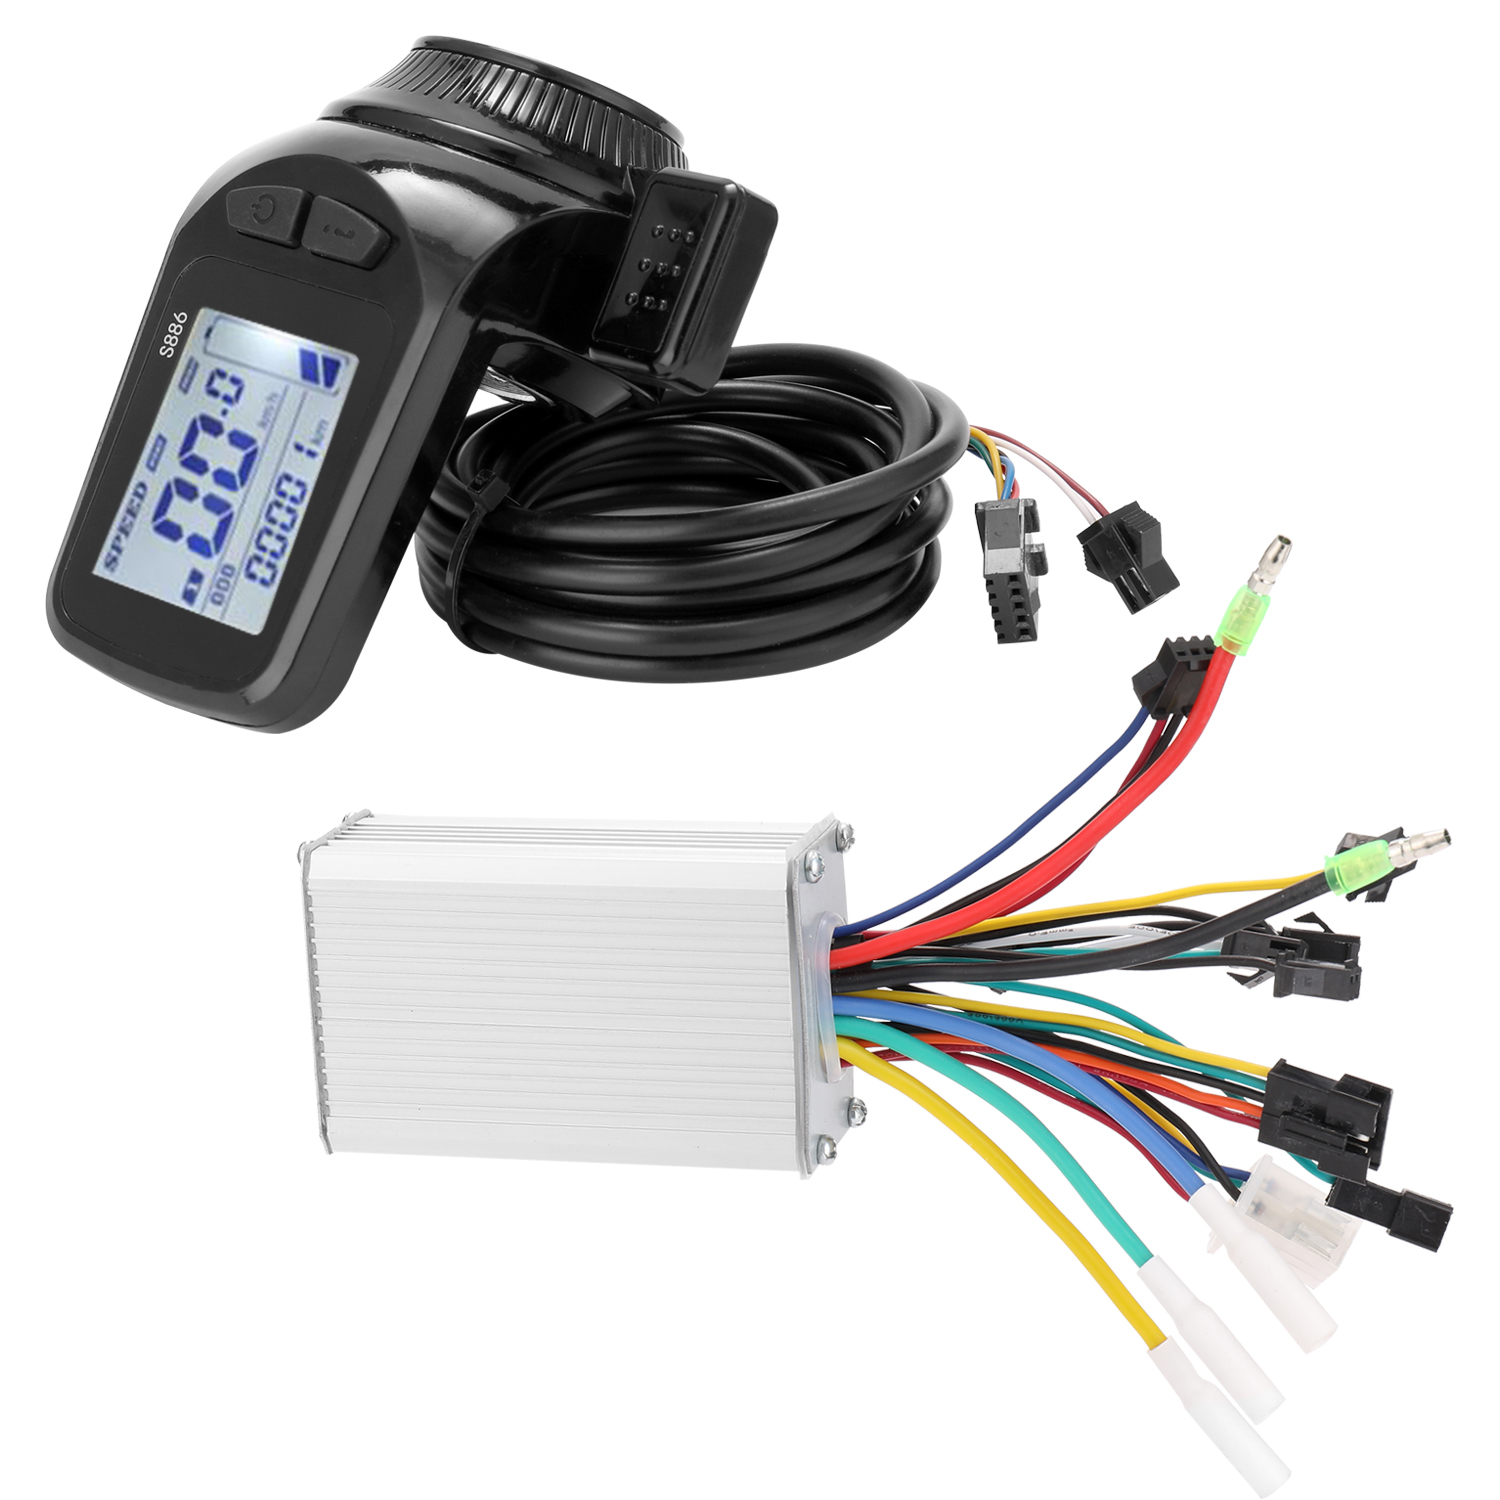 36V-<font><b>60V</b></font> 350W <font><b>Motor</b></font> Brushless Controller LCD Display Panel Thumb Throttle Electric Bicycles Scooter Brushless Controller Kit image